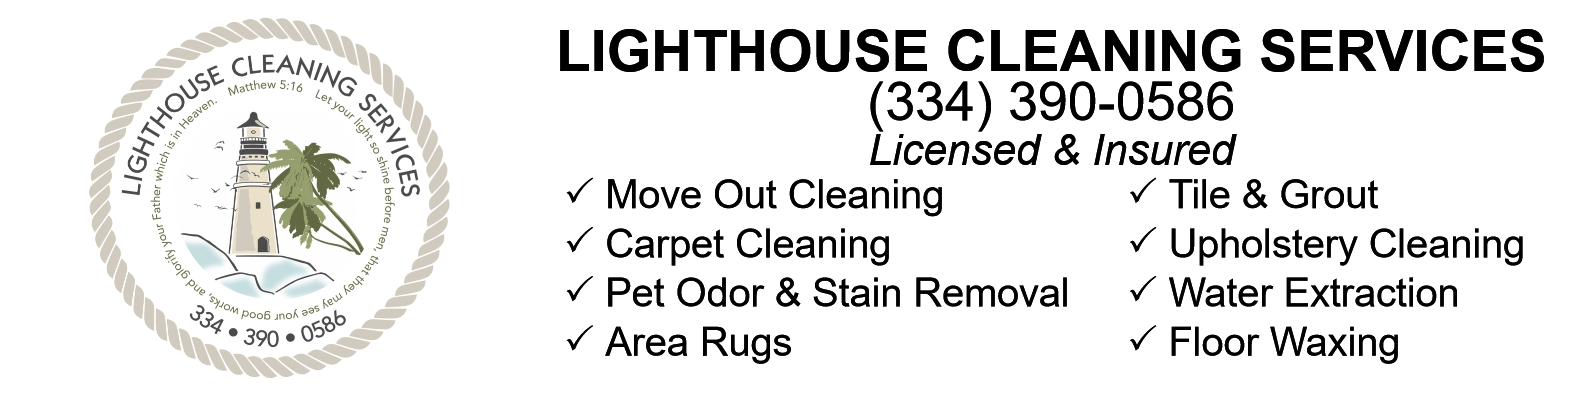 Lighthouse Cleaning Services (@lighthousecleaningservices) Cover Image